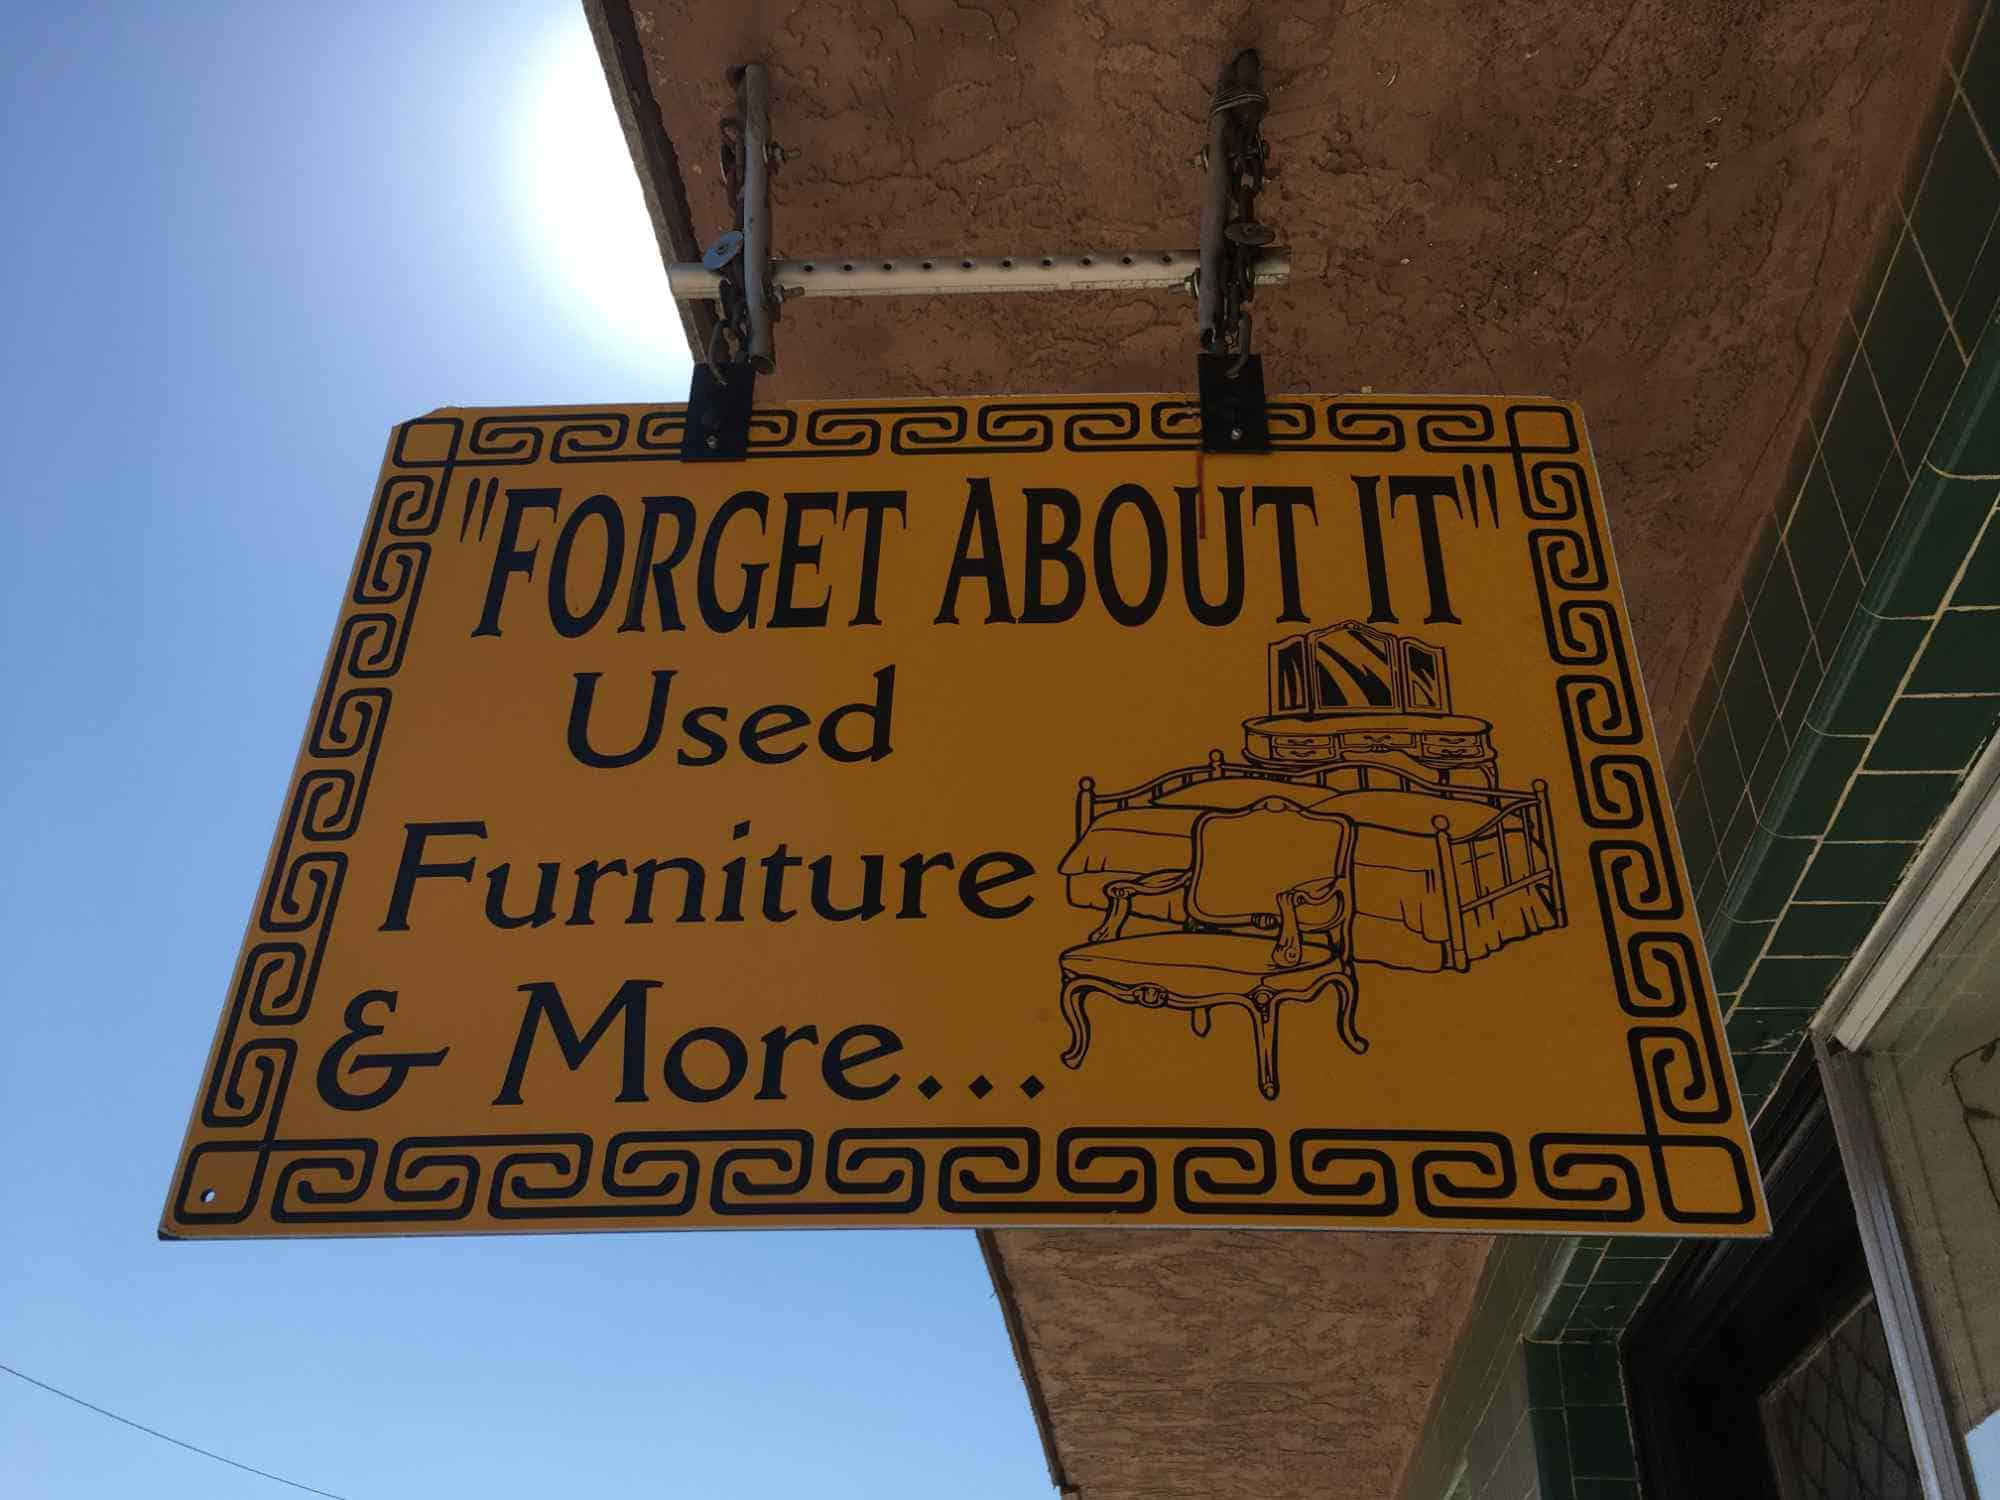 Forget About It Used Furniture & More